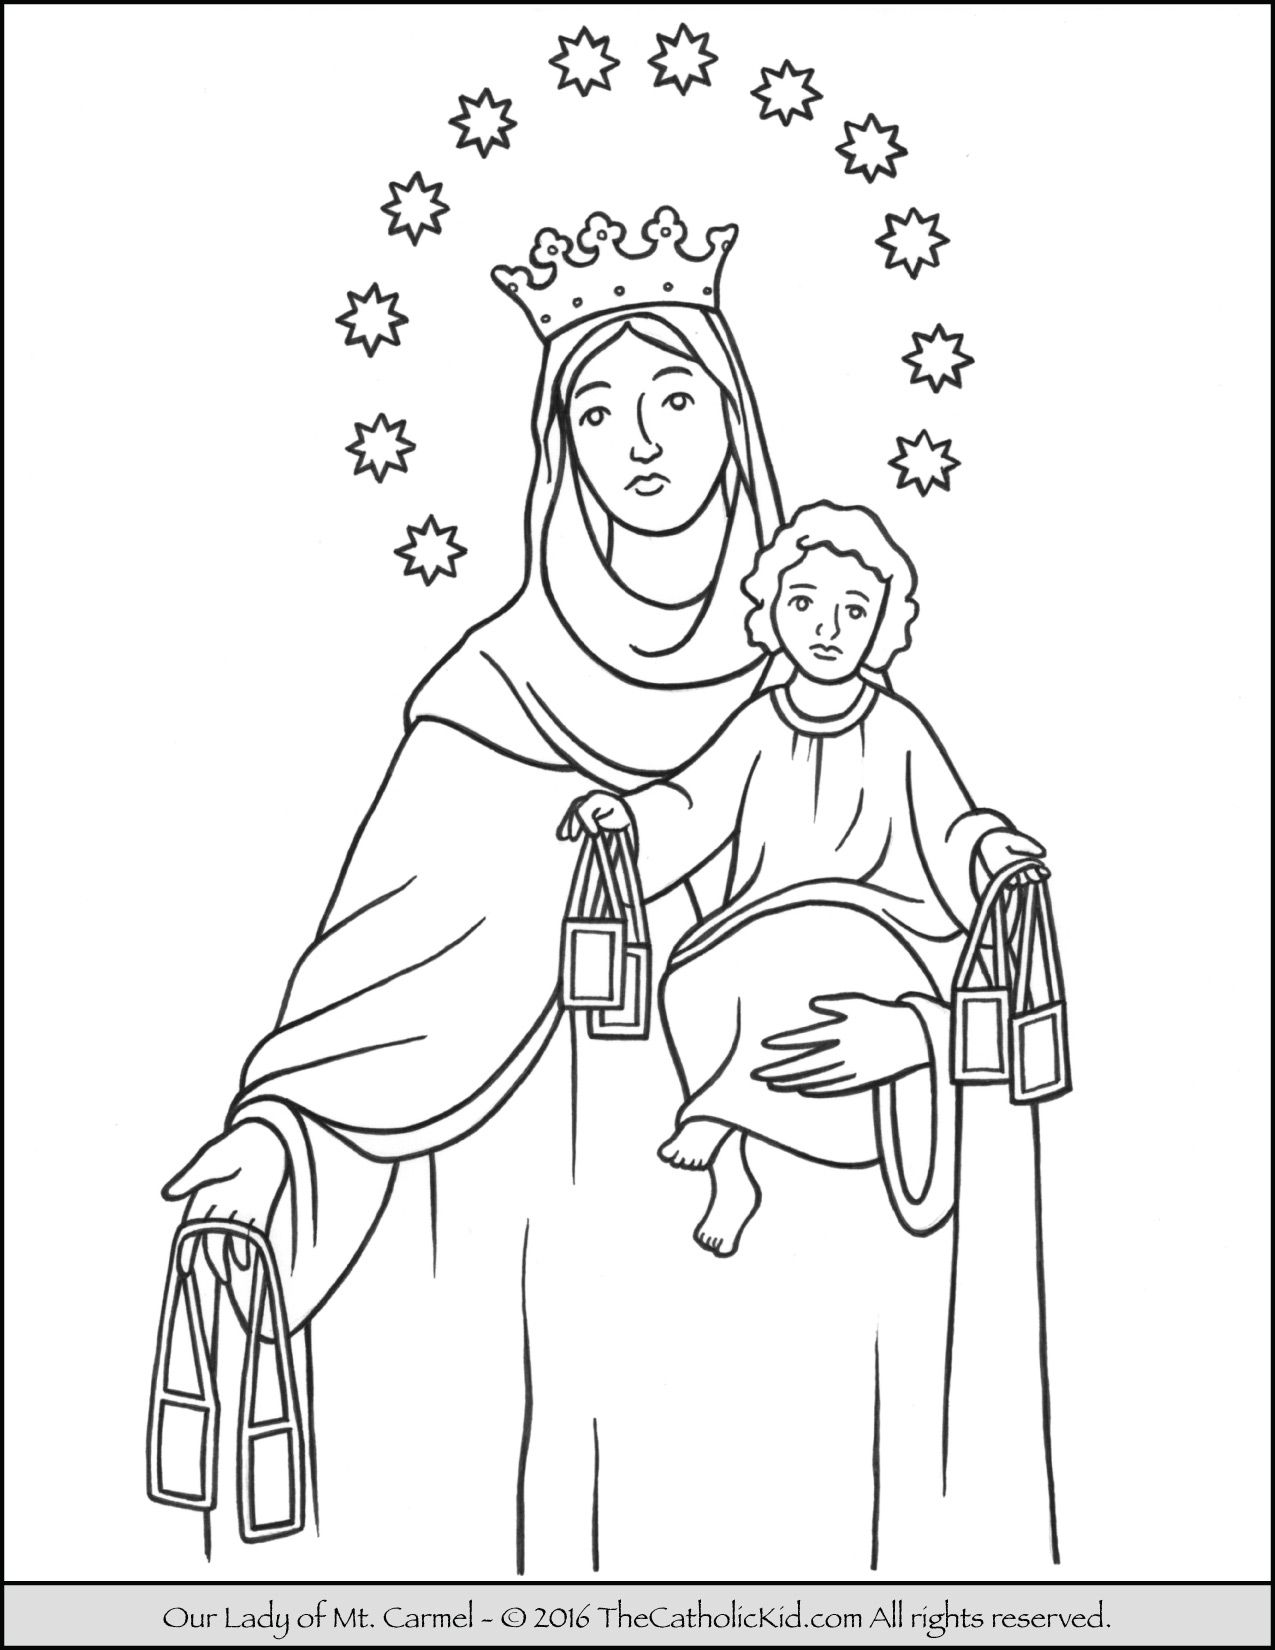 our lady of mt carmel coloring page mary coloring pages